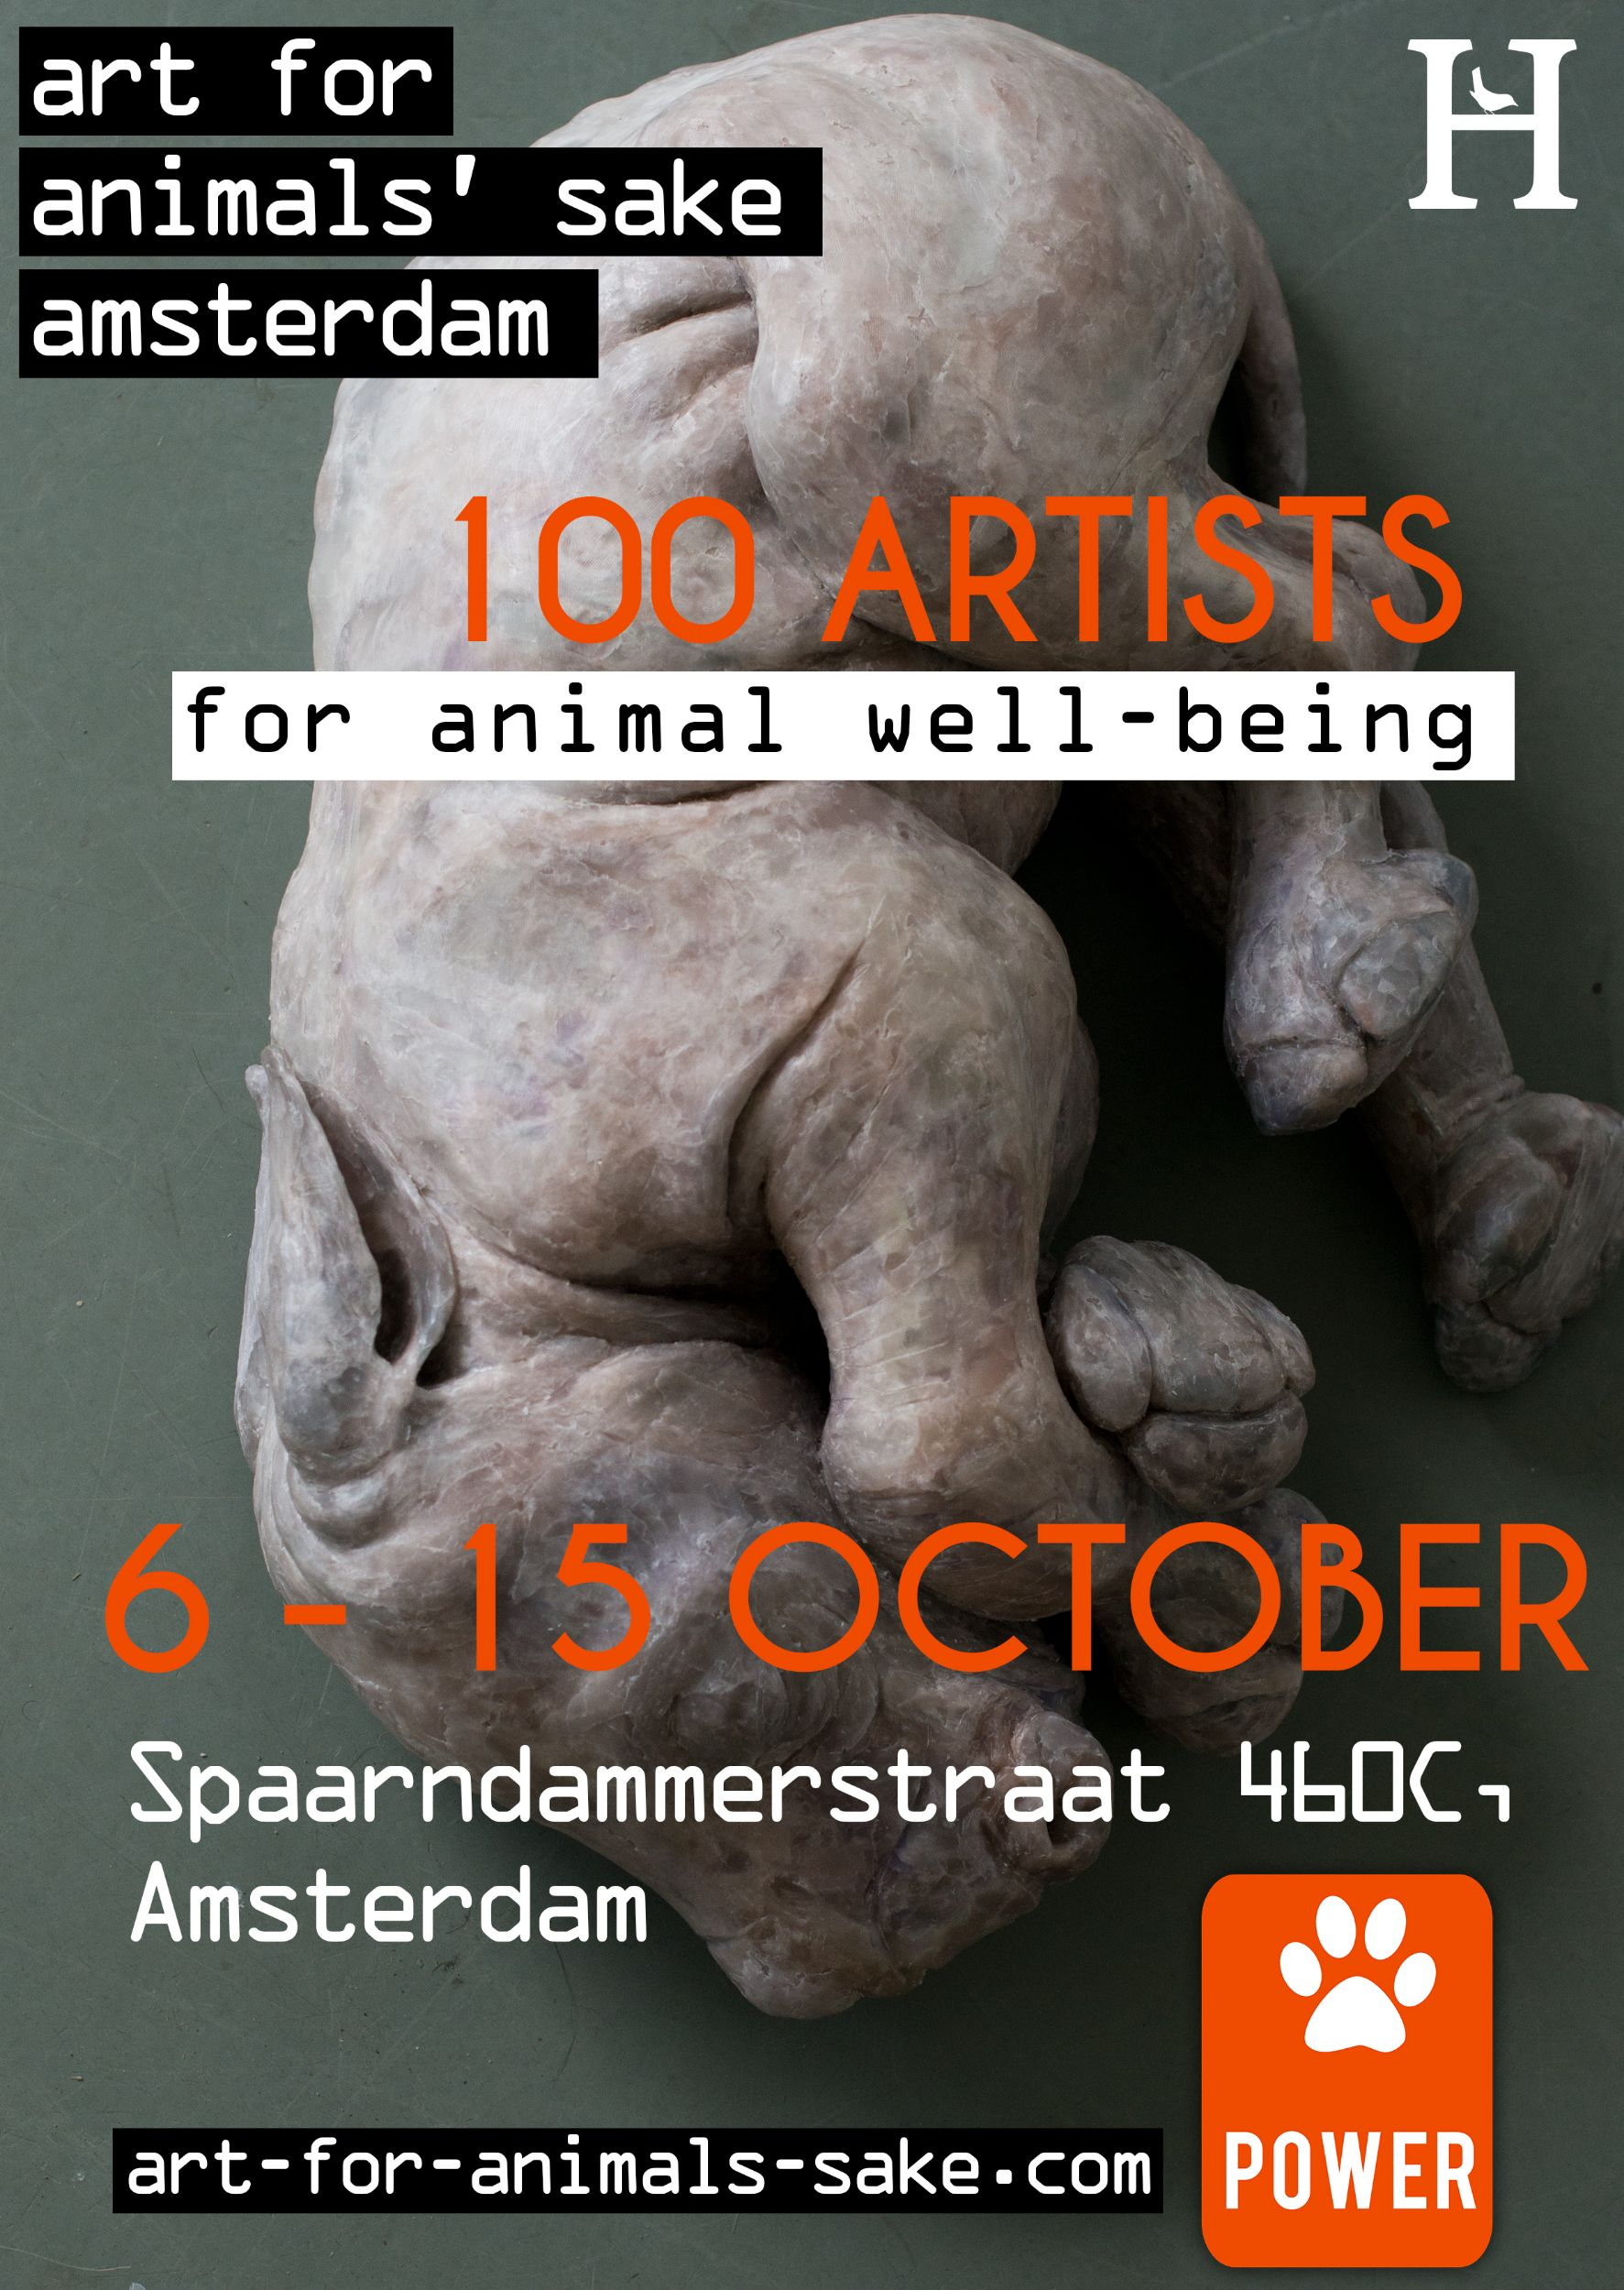 art for animals' sake amsterdam - Hartmut Kiewert